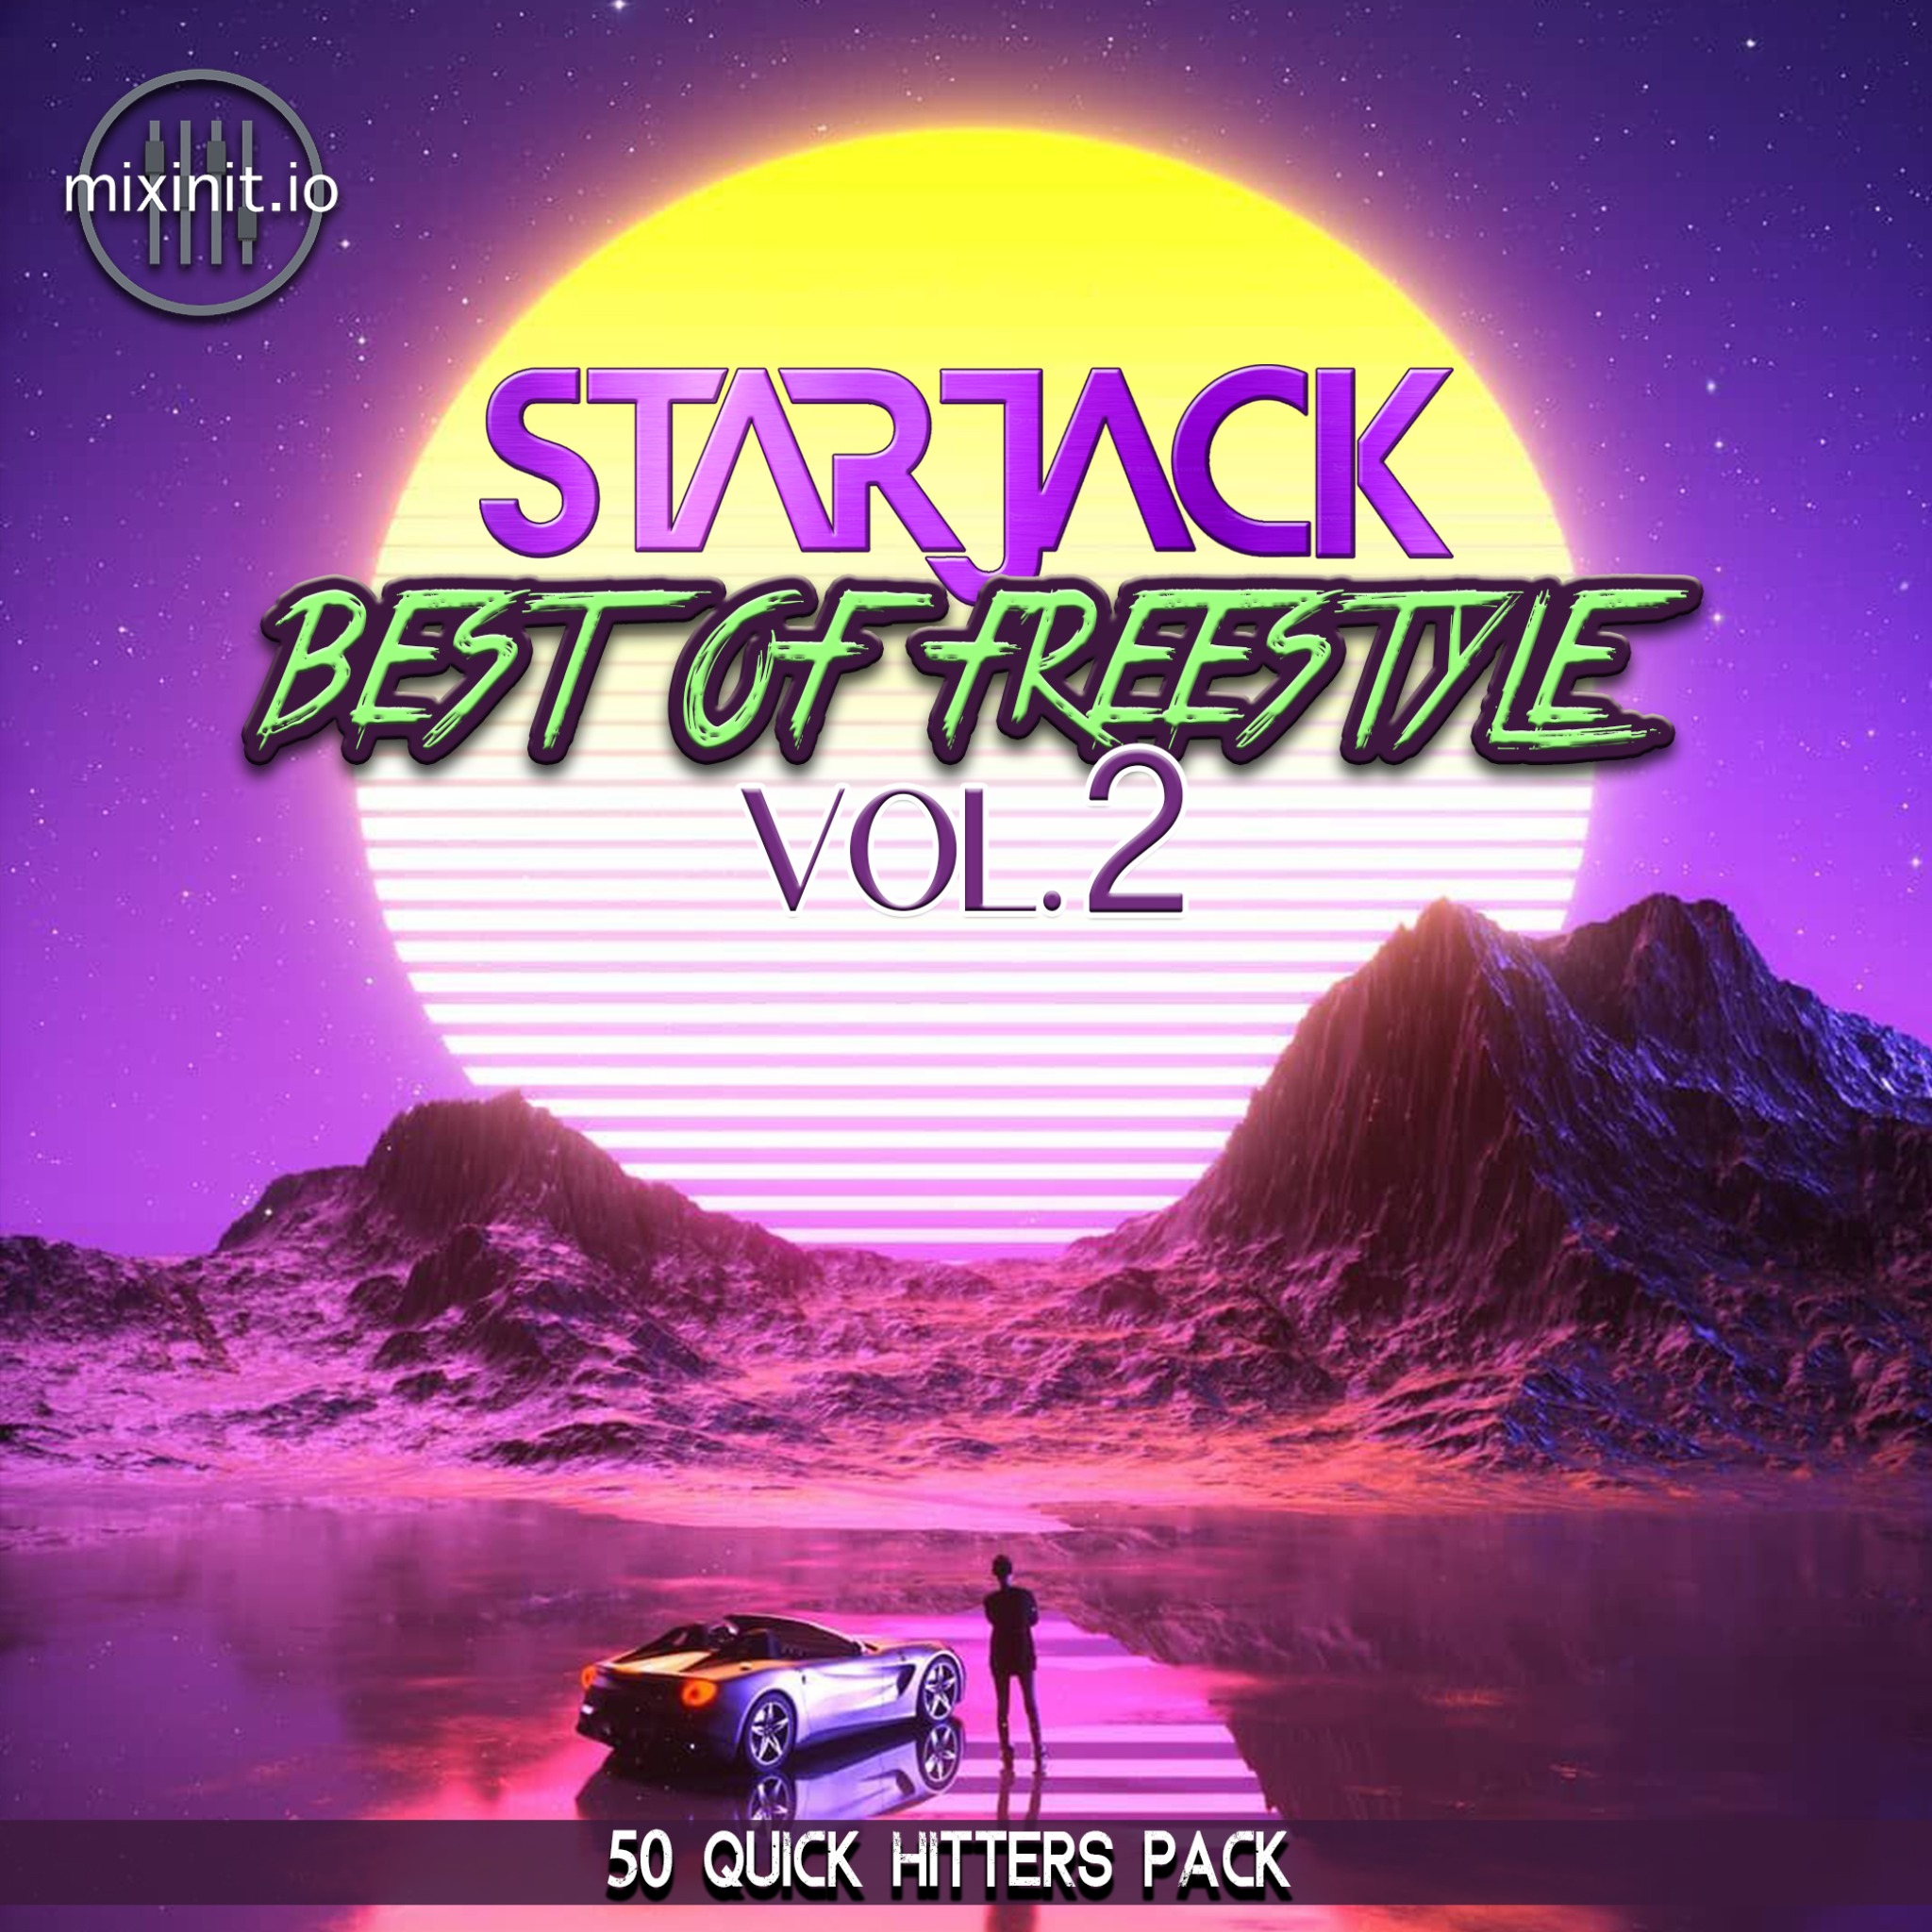 Starjack - Freestyle Quick Hitters Vol. 2 (50 Pack)